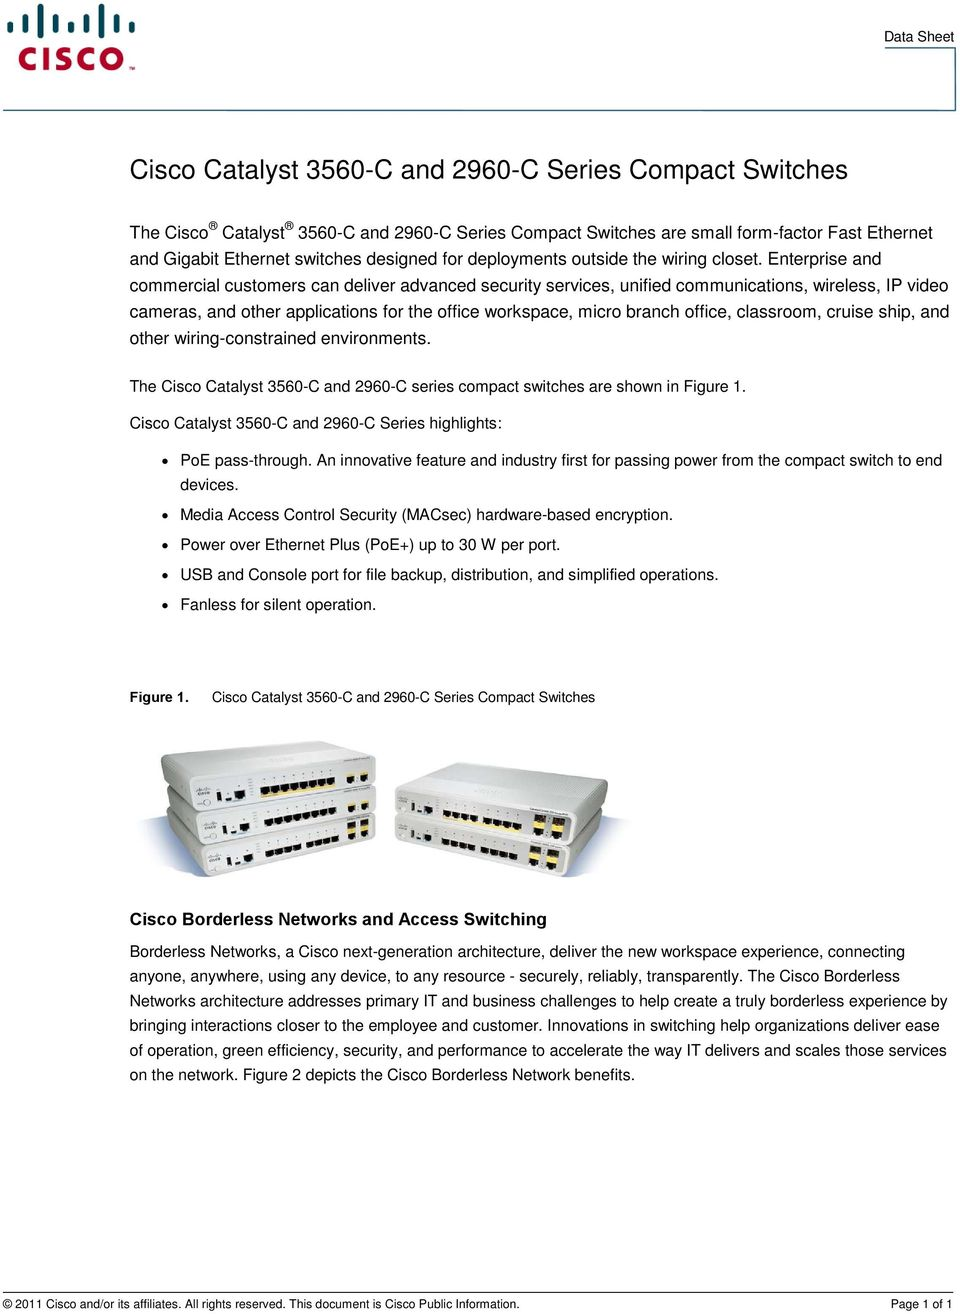 Cisco Catalyst 3560-C and 2960-C Series Compact Switches - PDF